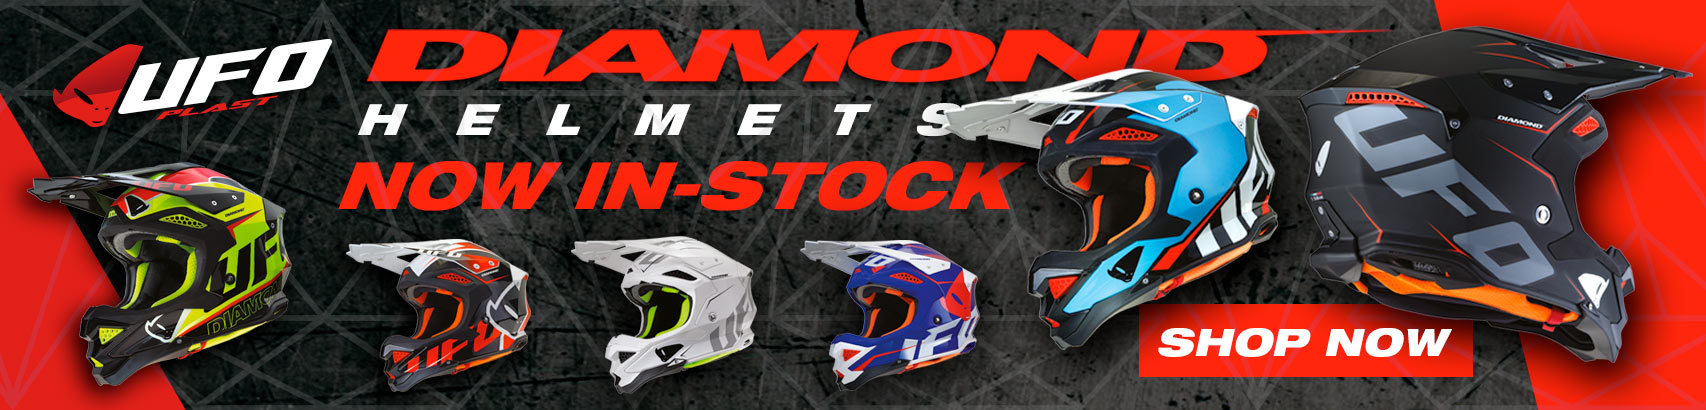 2018 UFO Diamond MX Helmets